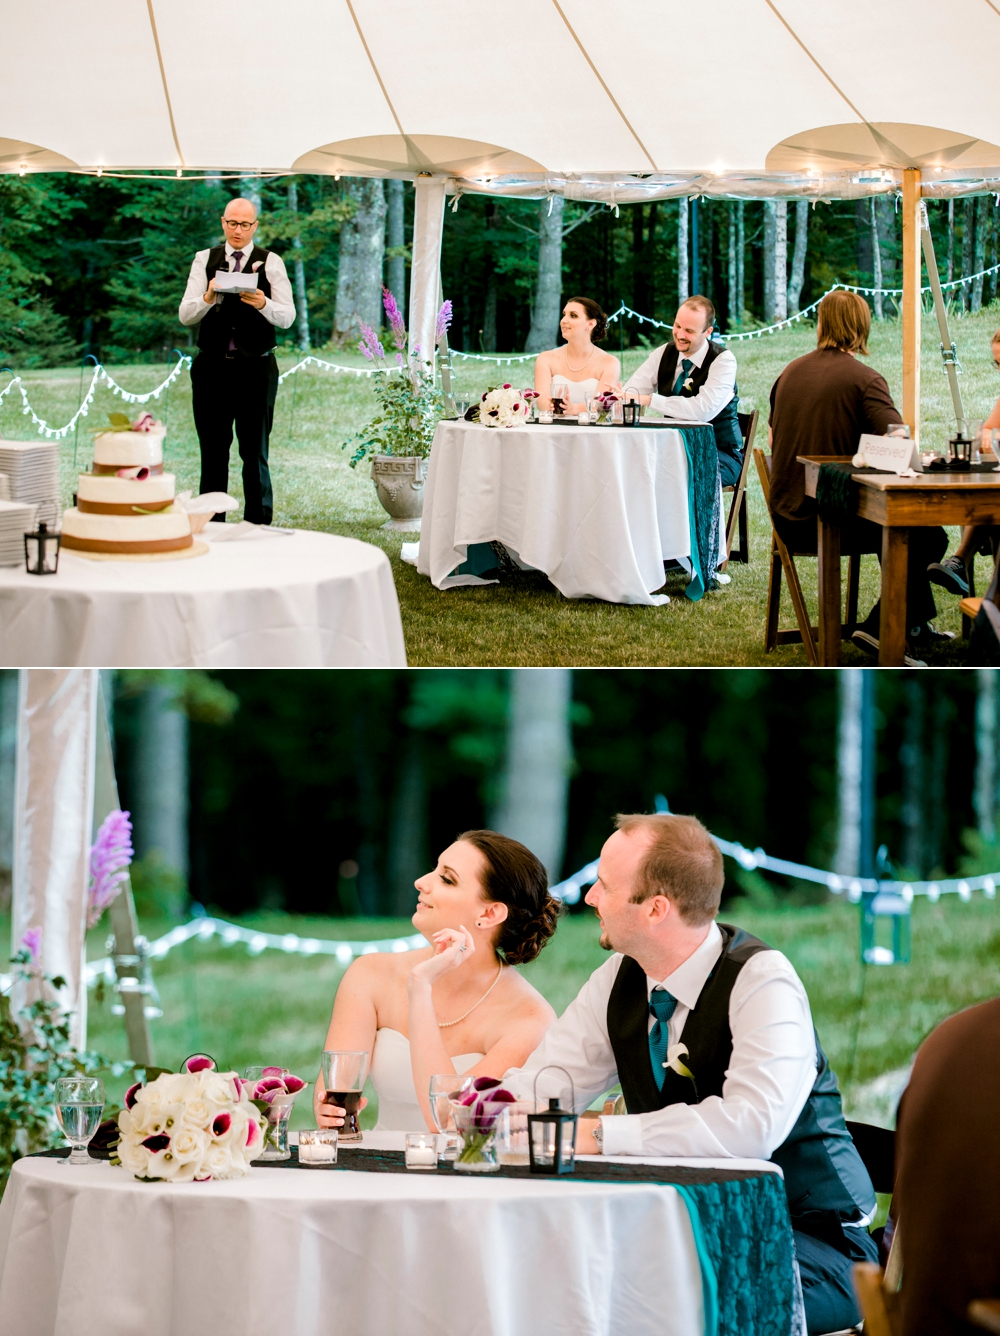 SomerbyJonesPhotography__VermontWedding_VTWedding_BackyardVermontWedding_0036.jpg